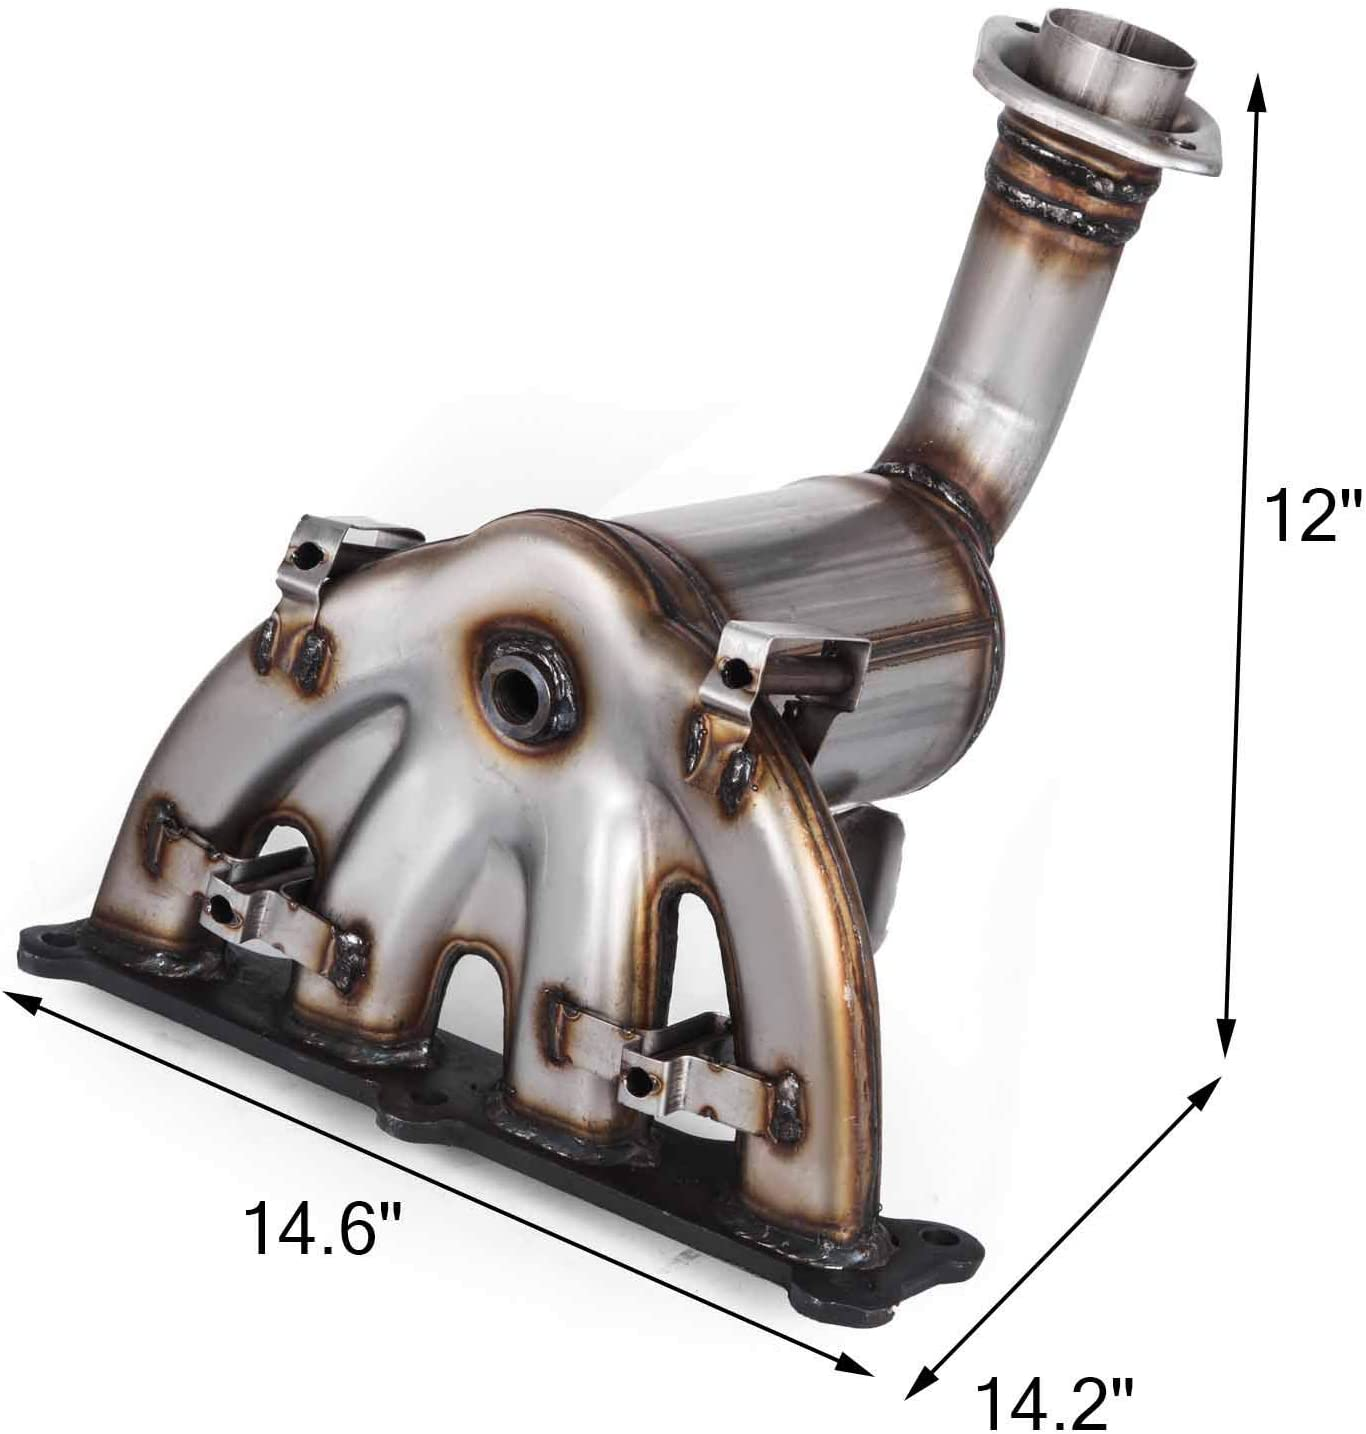 Bestauto 5105460AD 5105460AE Stainless Steel Exhaust Manifold with Catalytic Converter for 2007-2013 Dodge Caliber Compass Patriot 2.4L 327-02281 327-02282 ECO IV